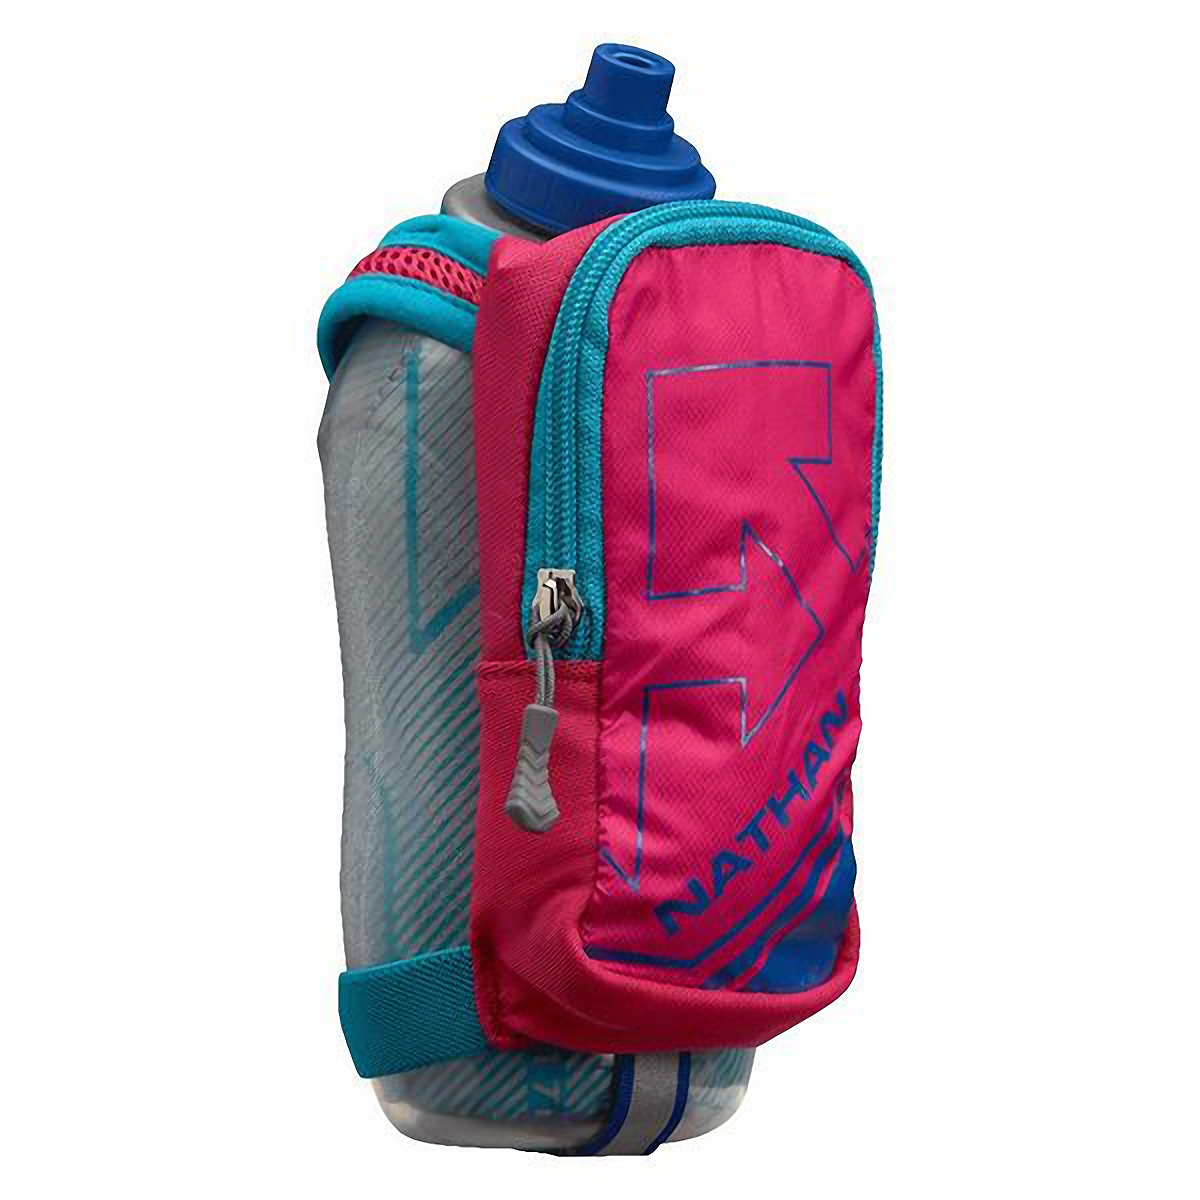 Nathan SpeedDraw Plus Insulated Flask  - Color: 90'S - Size: One Size, 90'S, large, image 1